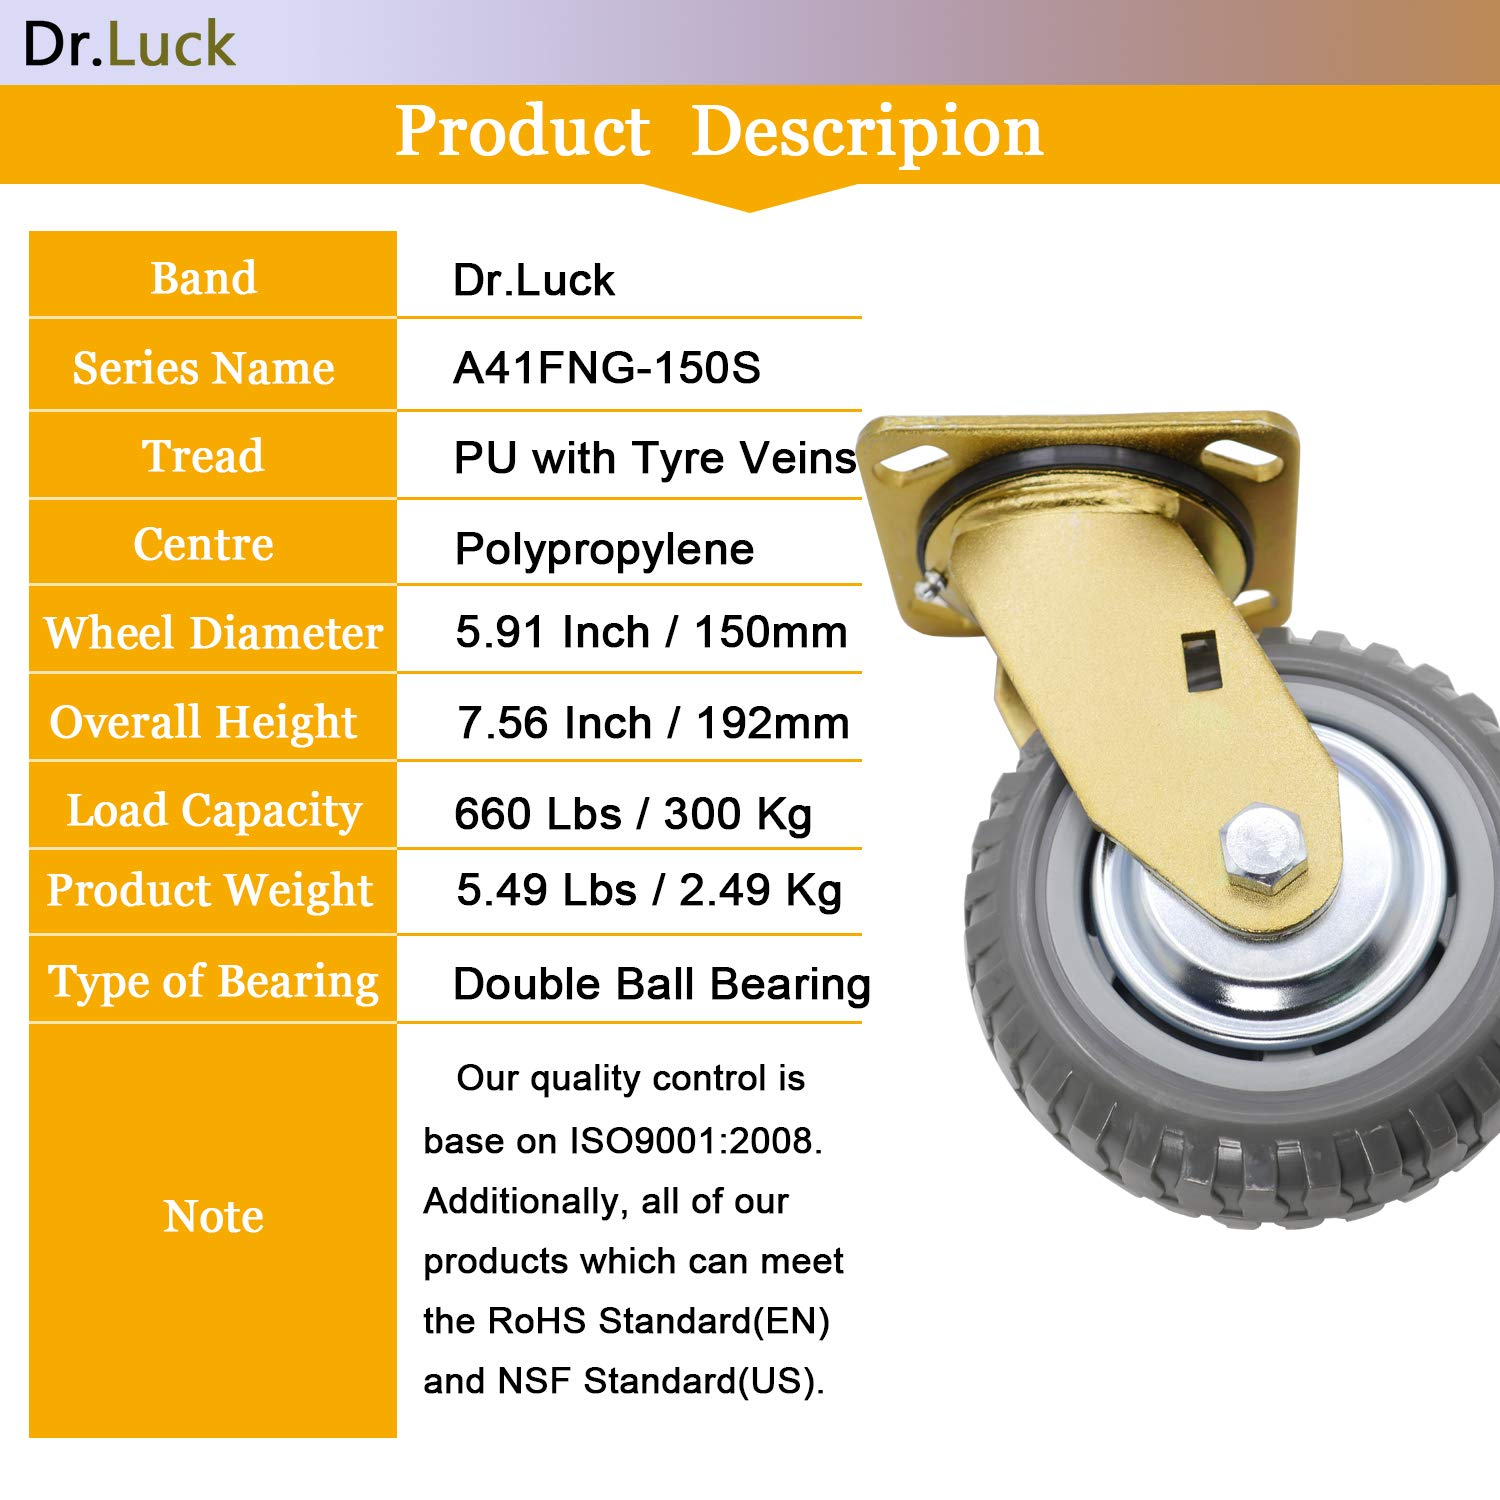 Castors Diy Tools 2 Pu Spring Loaded Swivel Caster Heavy Duty 110 Lbs Load Capacity Nrpfell Gate Stem Wheel A quick online weight calculator to convert pounds(lb) to kilograms(kg). castors diy tools 2 pu spring loaded